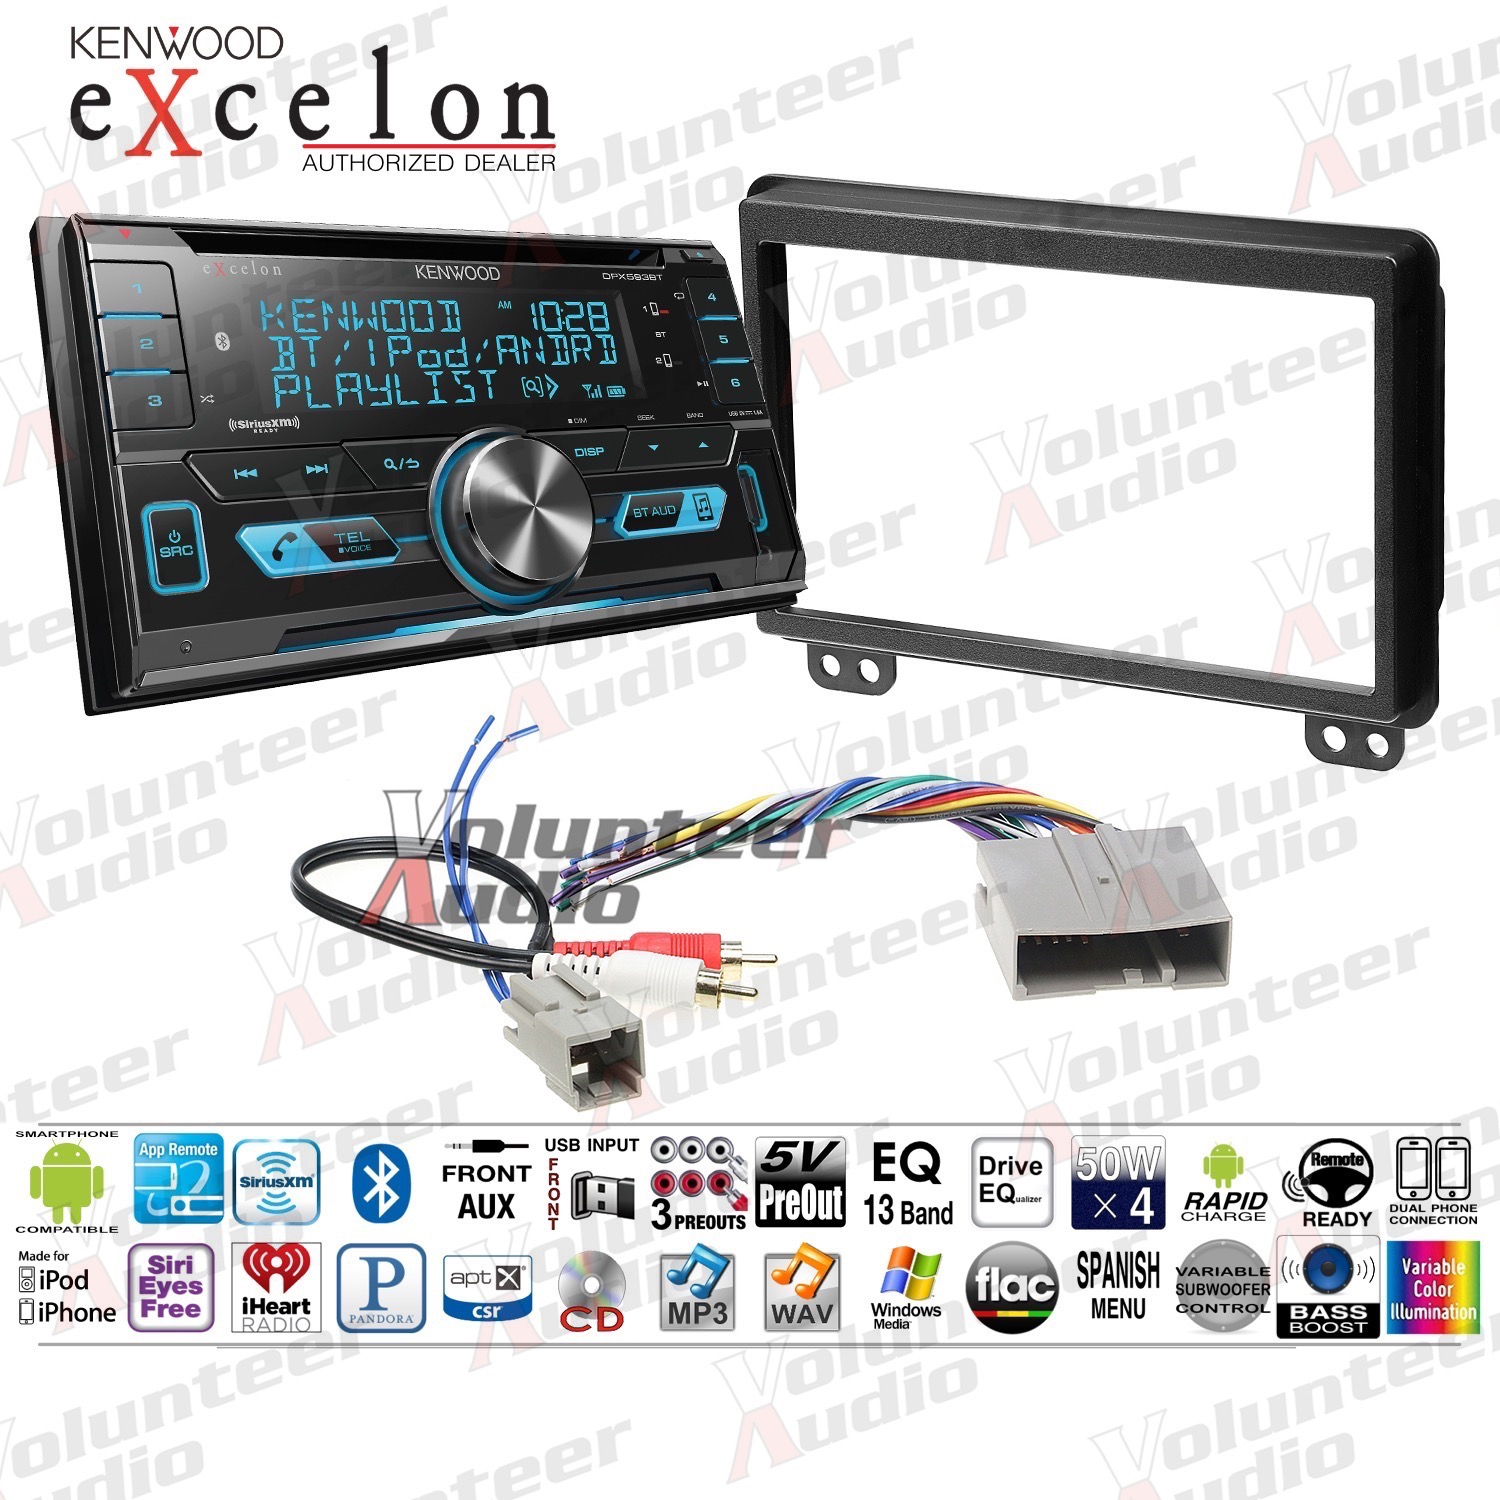 SiriusXM Tuner Kenwood DPX9705S 2 DIN Bluetooth In-Dash Car Stereo Receiver